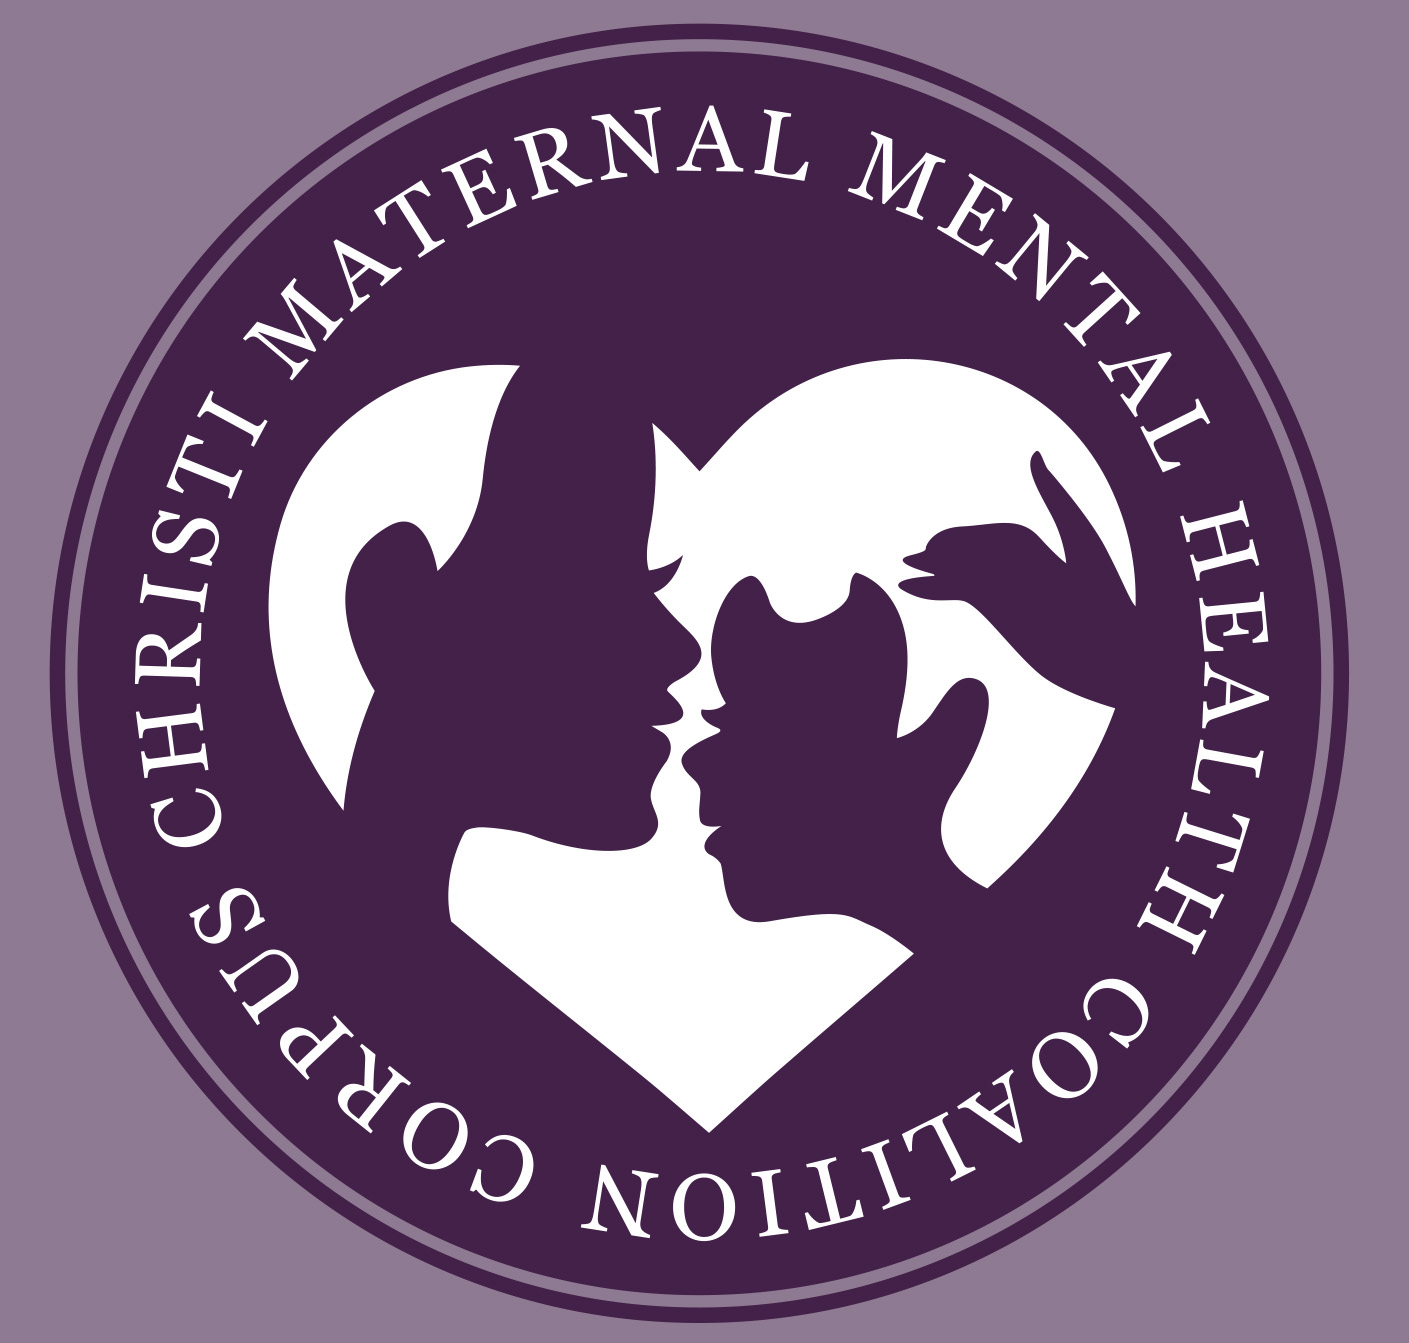 Corpus Christi Maternal Mental Health Coalition